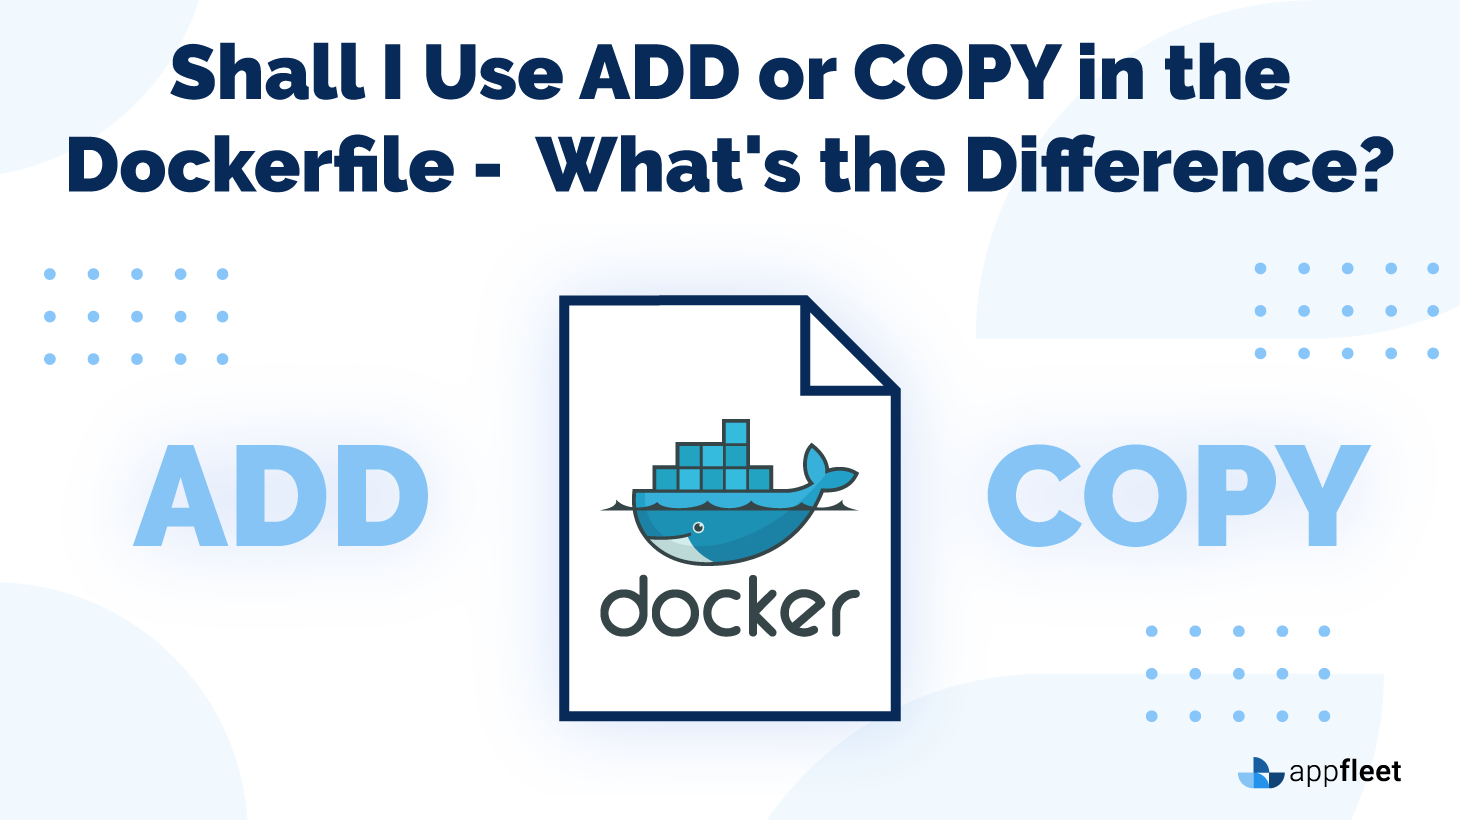 Shall I Use ADD or COPY in the Dockerfile   What's the Difference